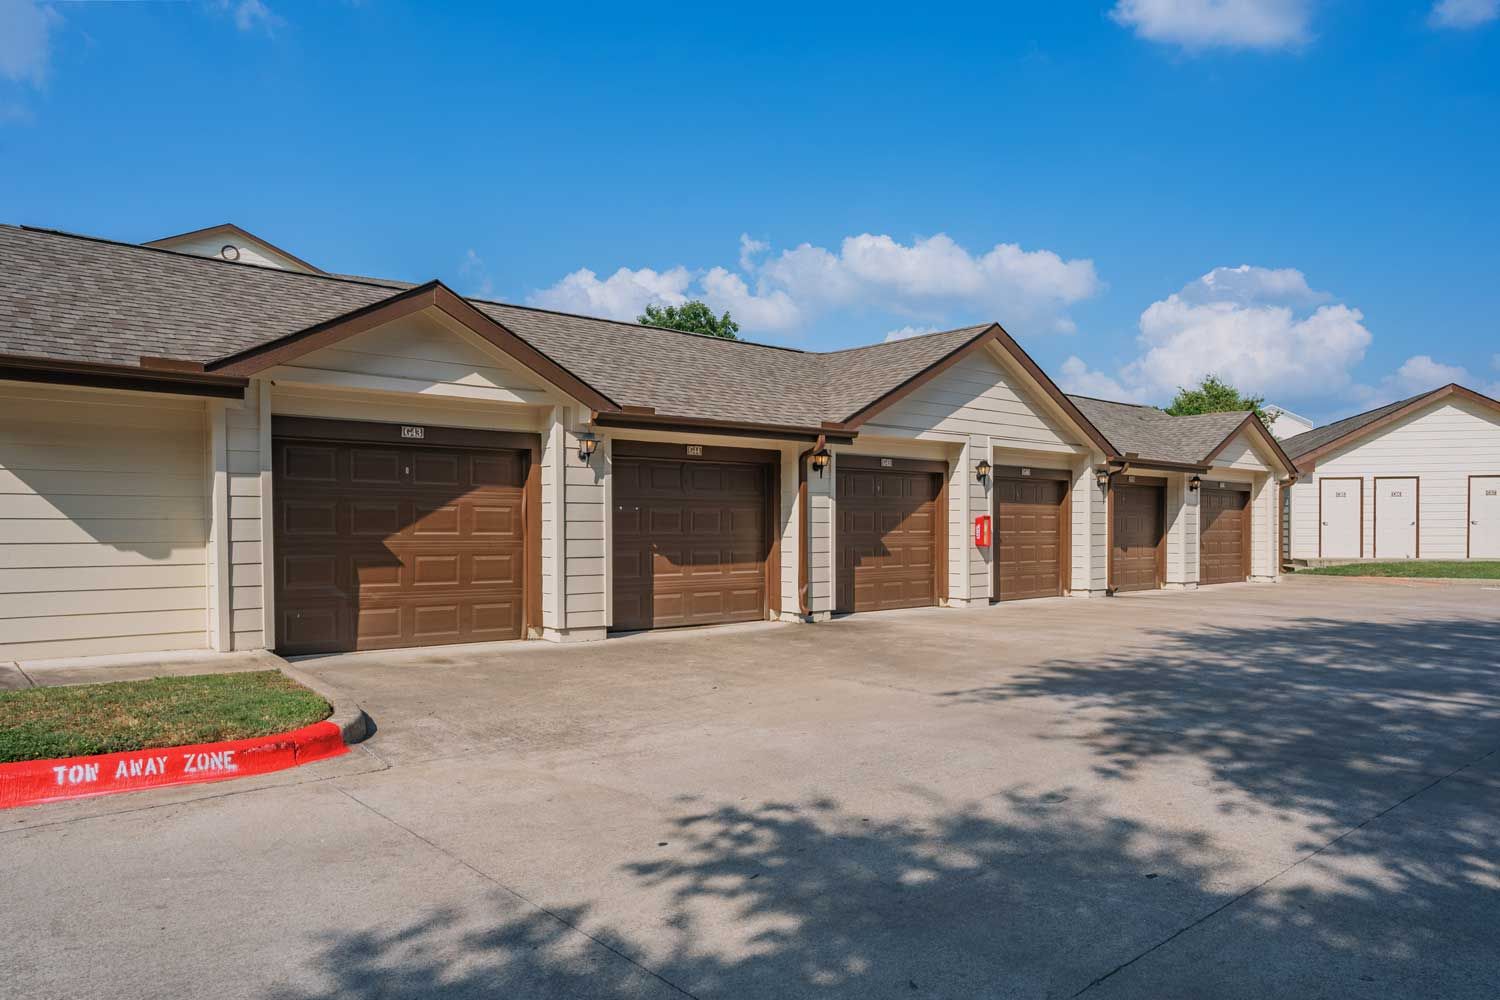 Attached and Detached Garages at Tech Ridge Apartments in Austin, TX